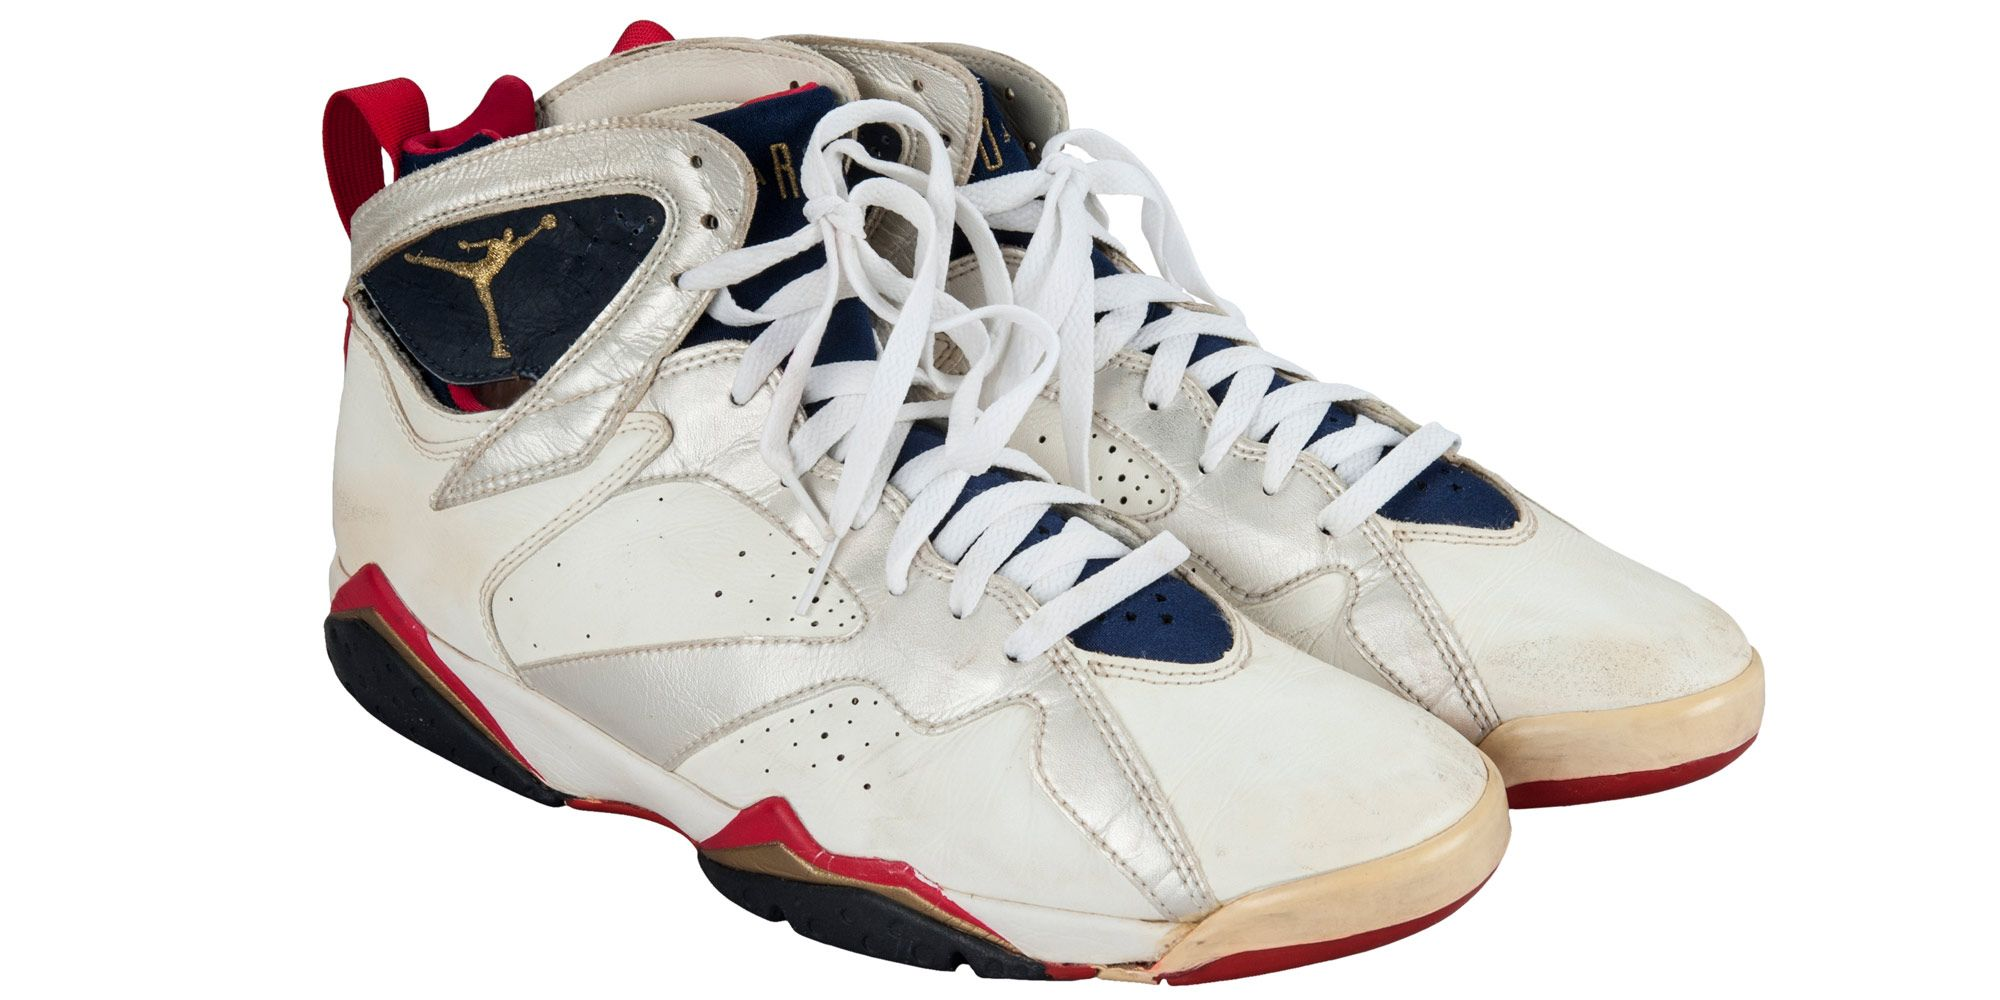 Michael Jordan\u0027s Nikes From the \u002792 Olympics Dream Team Are Up For Auction